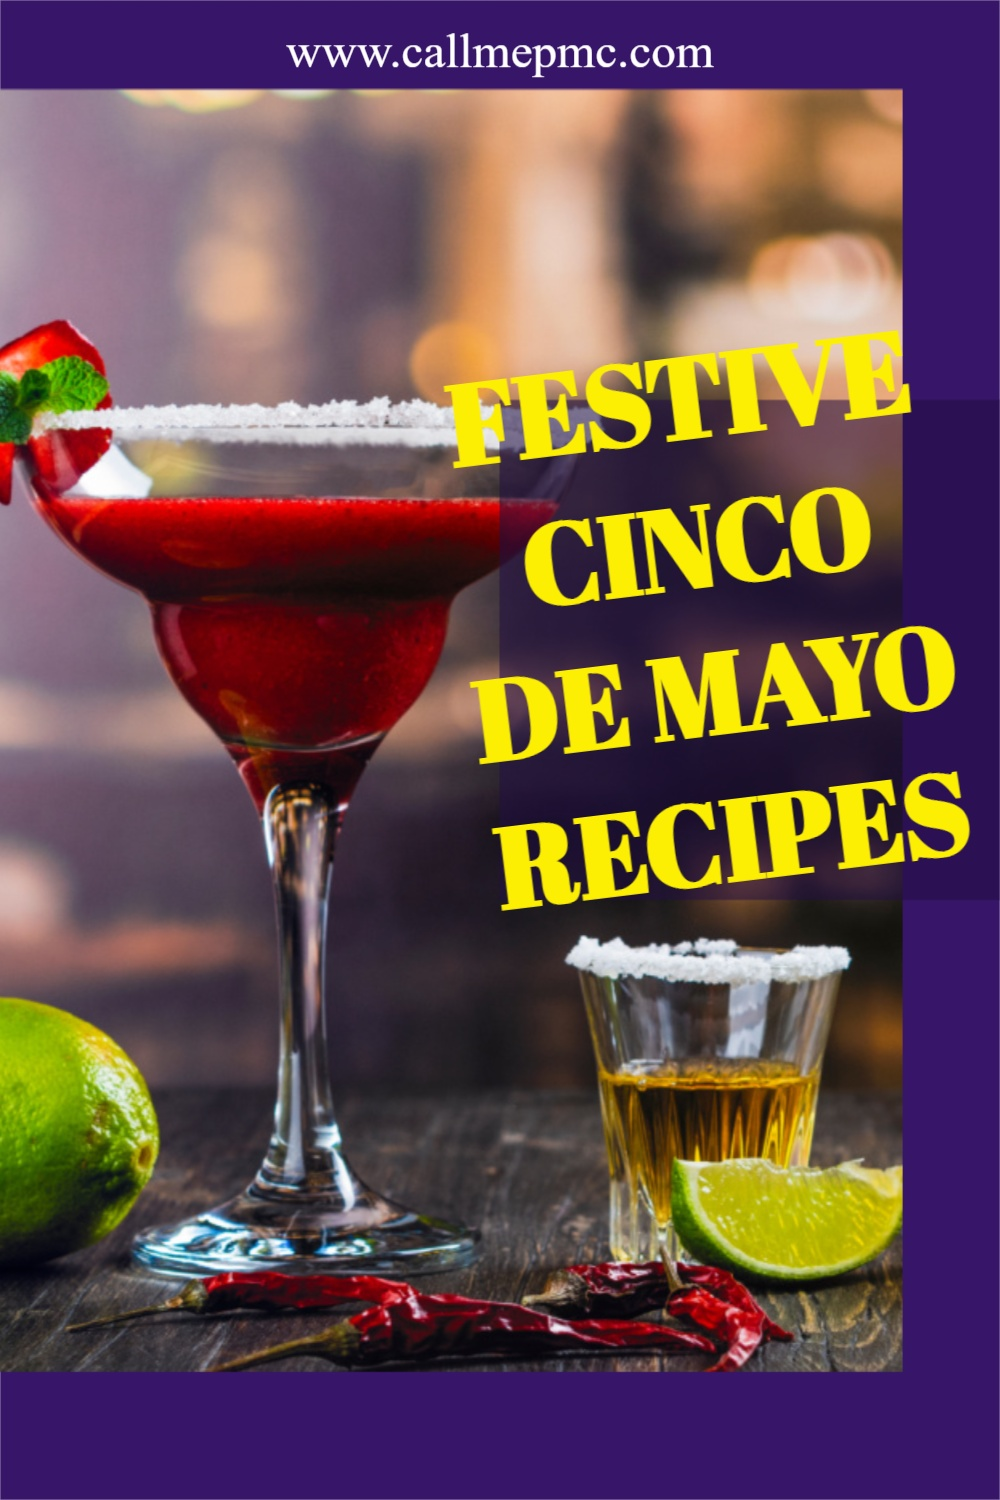 Festive Cinco de Mayo Recipes - some of the best Mexican and Tex-Mex recipes for you to celebrate with. Easy, delicious recipes! #texmex #Mexican #recipes #holidays #roundup #CincodeMayorecipes